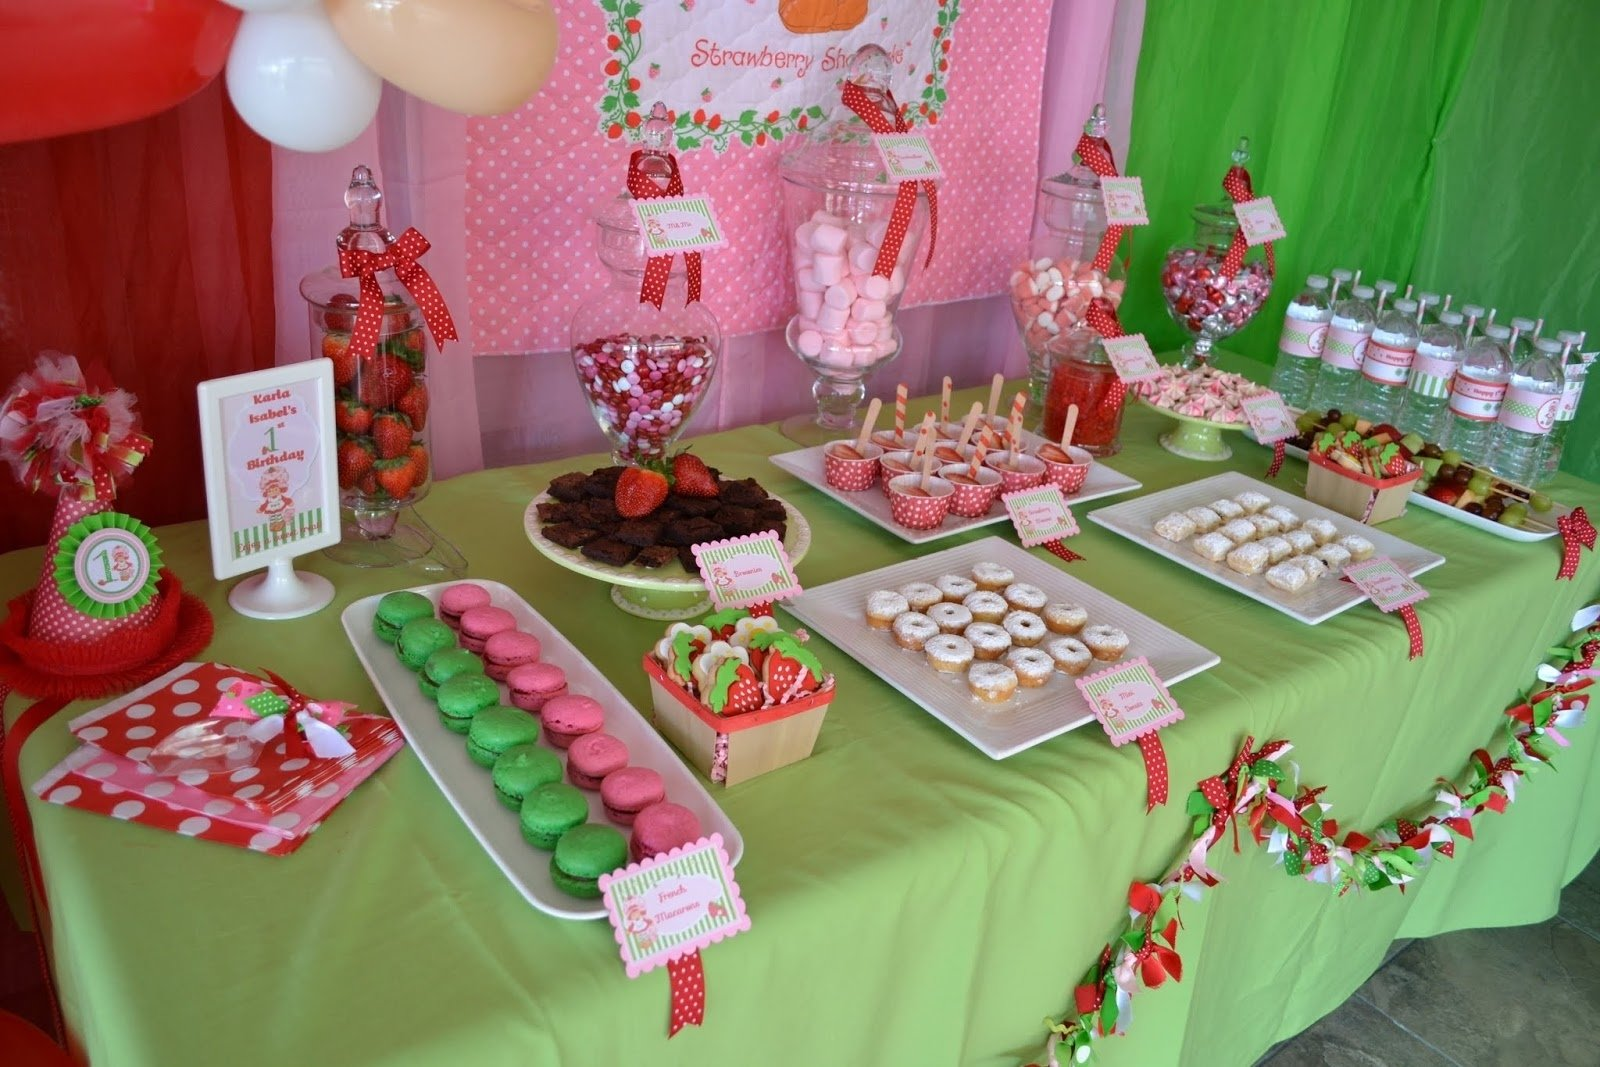 10 Attractive Strawberry Shortcake Birthday Party Ideas partylicious events pr vintage strawberry shortcake birthday 2021